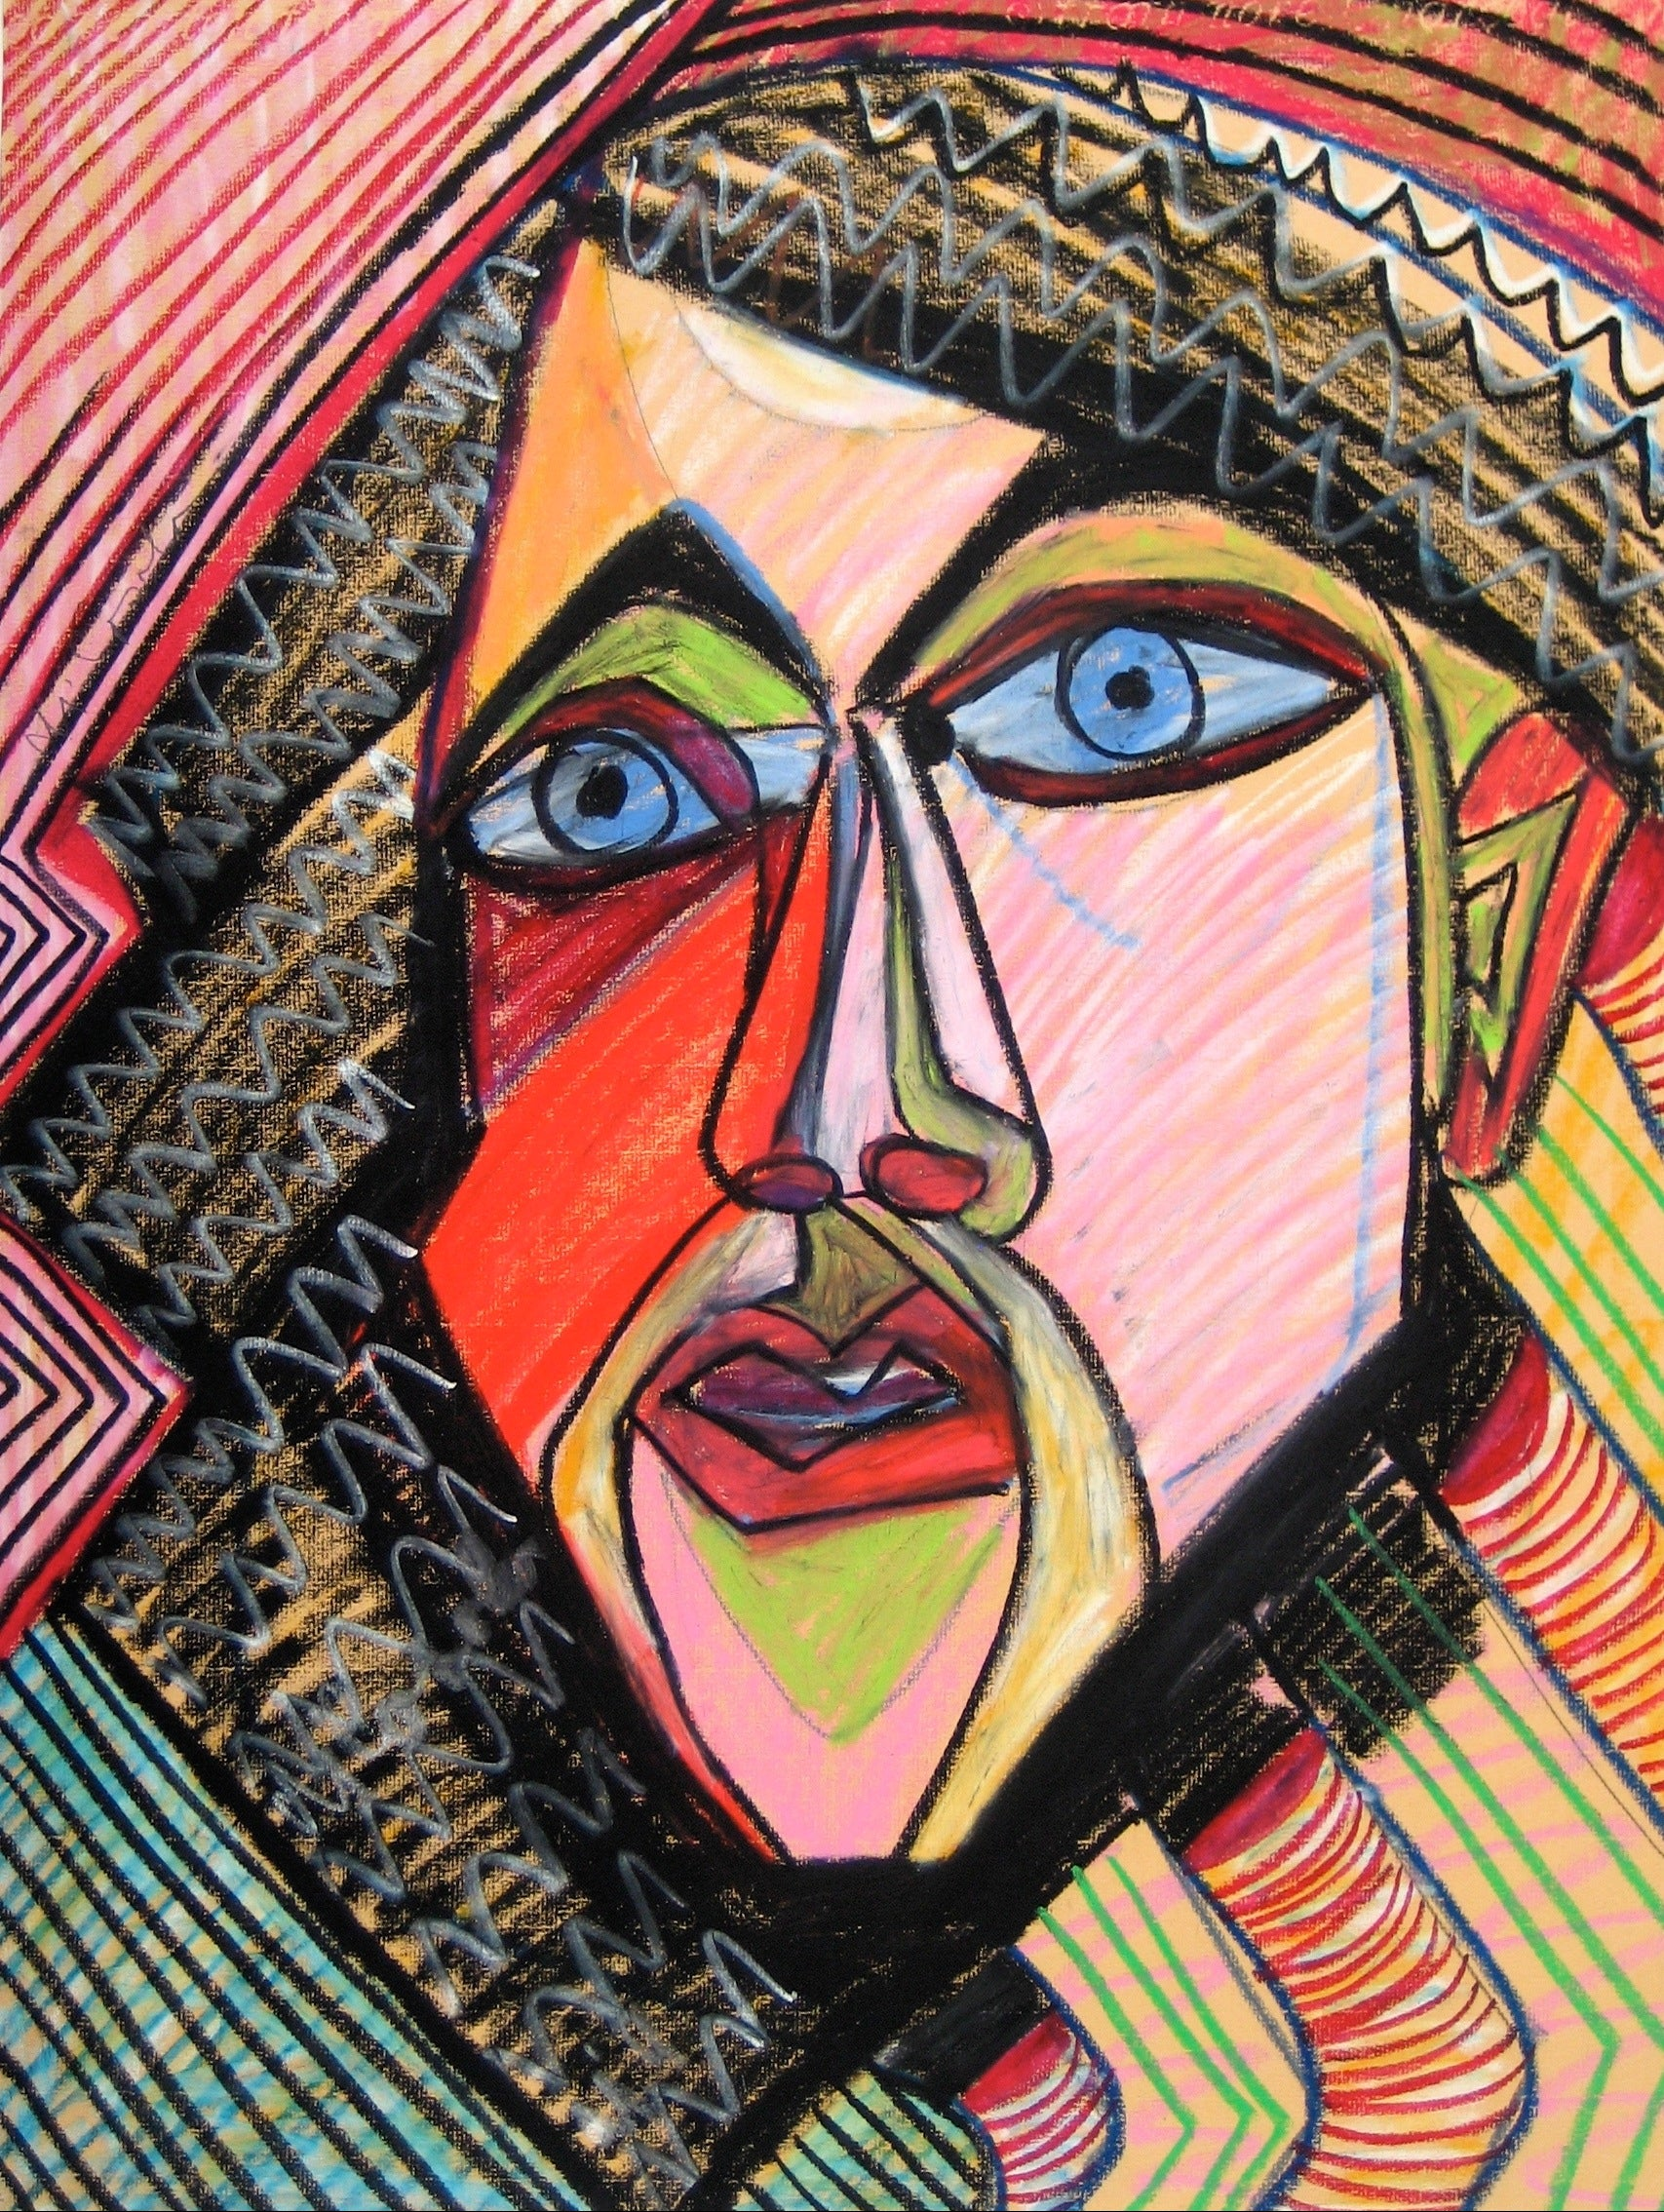 Bright Psychedelic Geometric Surreal Portrait <br>Mid to Late 20th Century Pastel <br><br>#16445